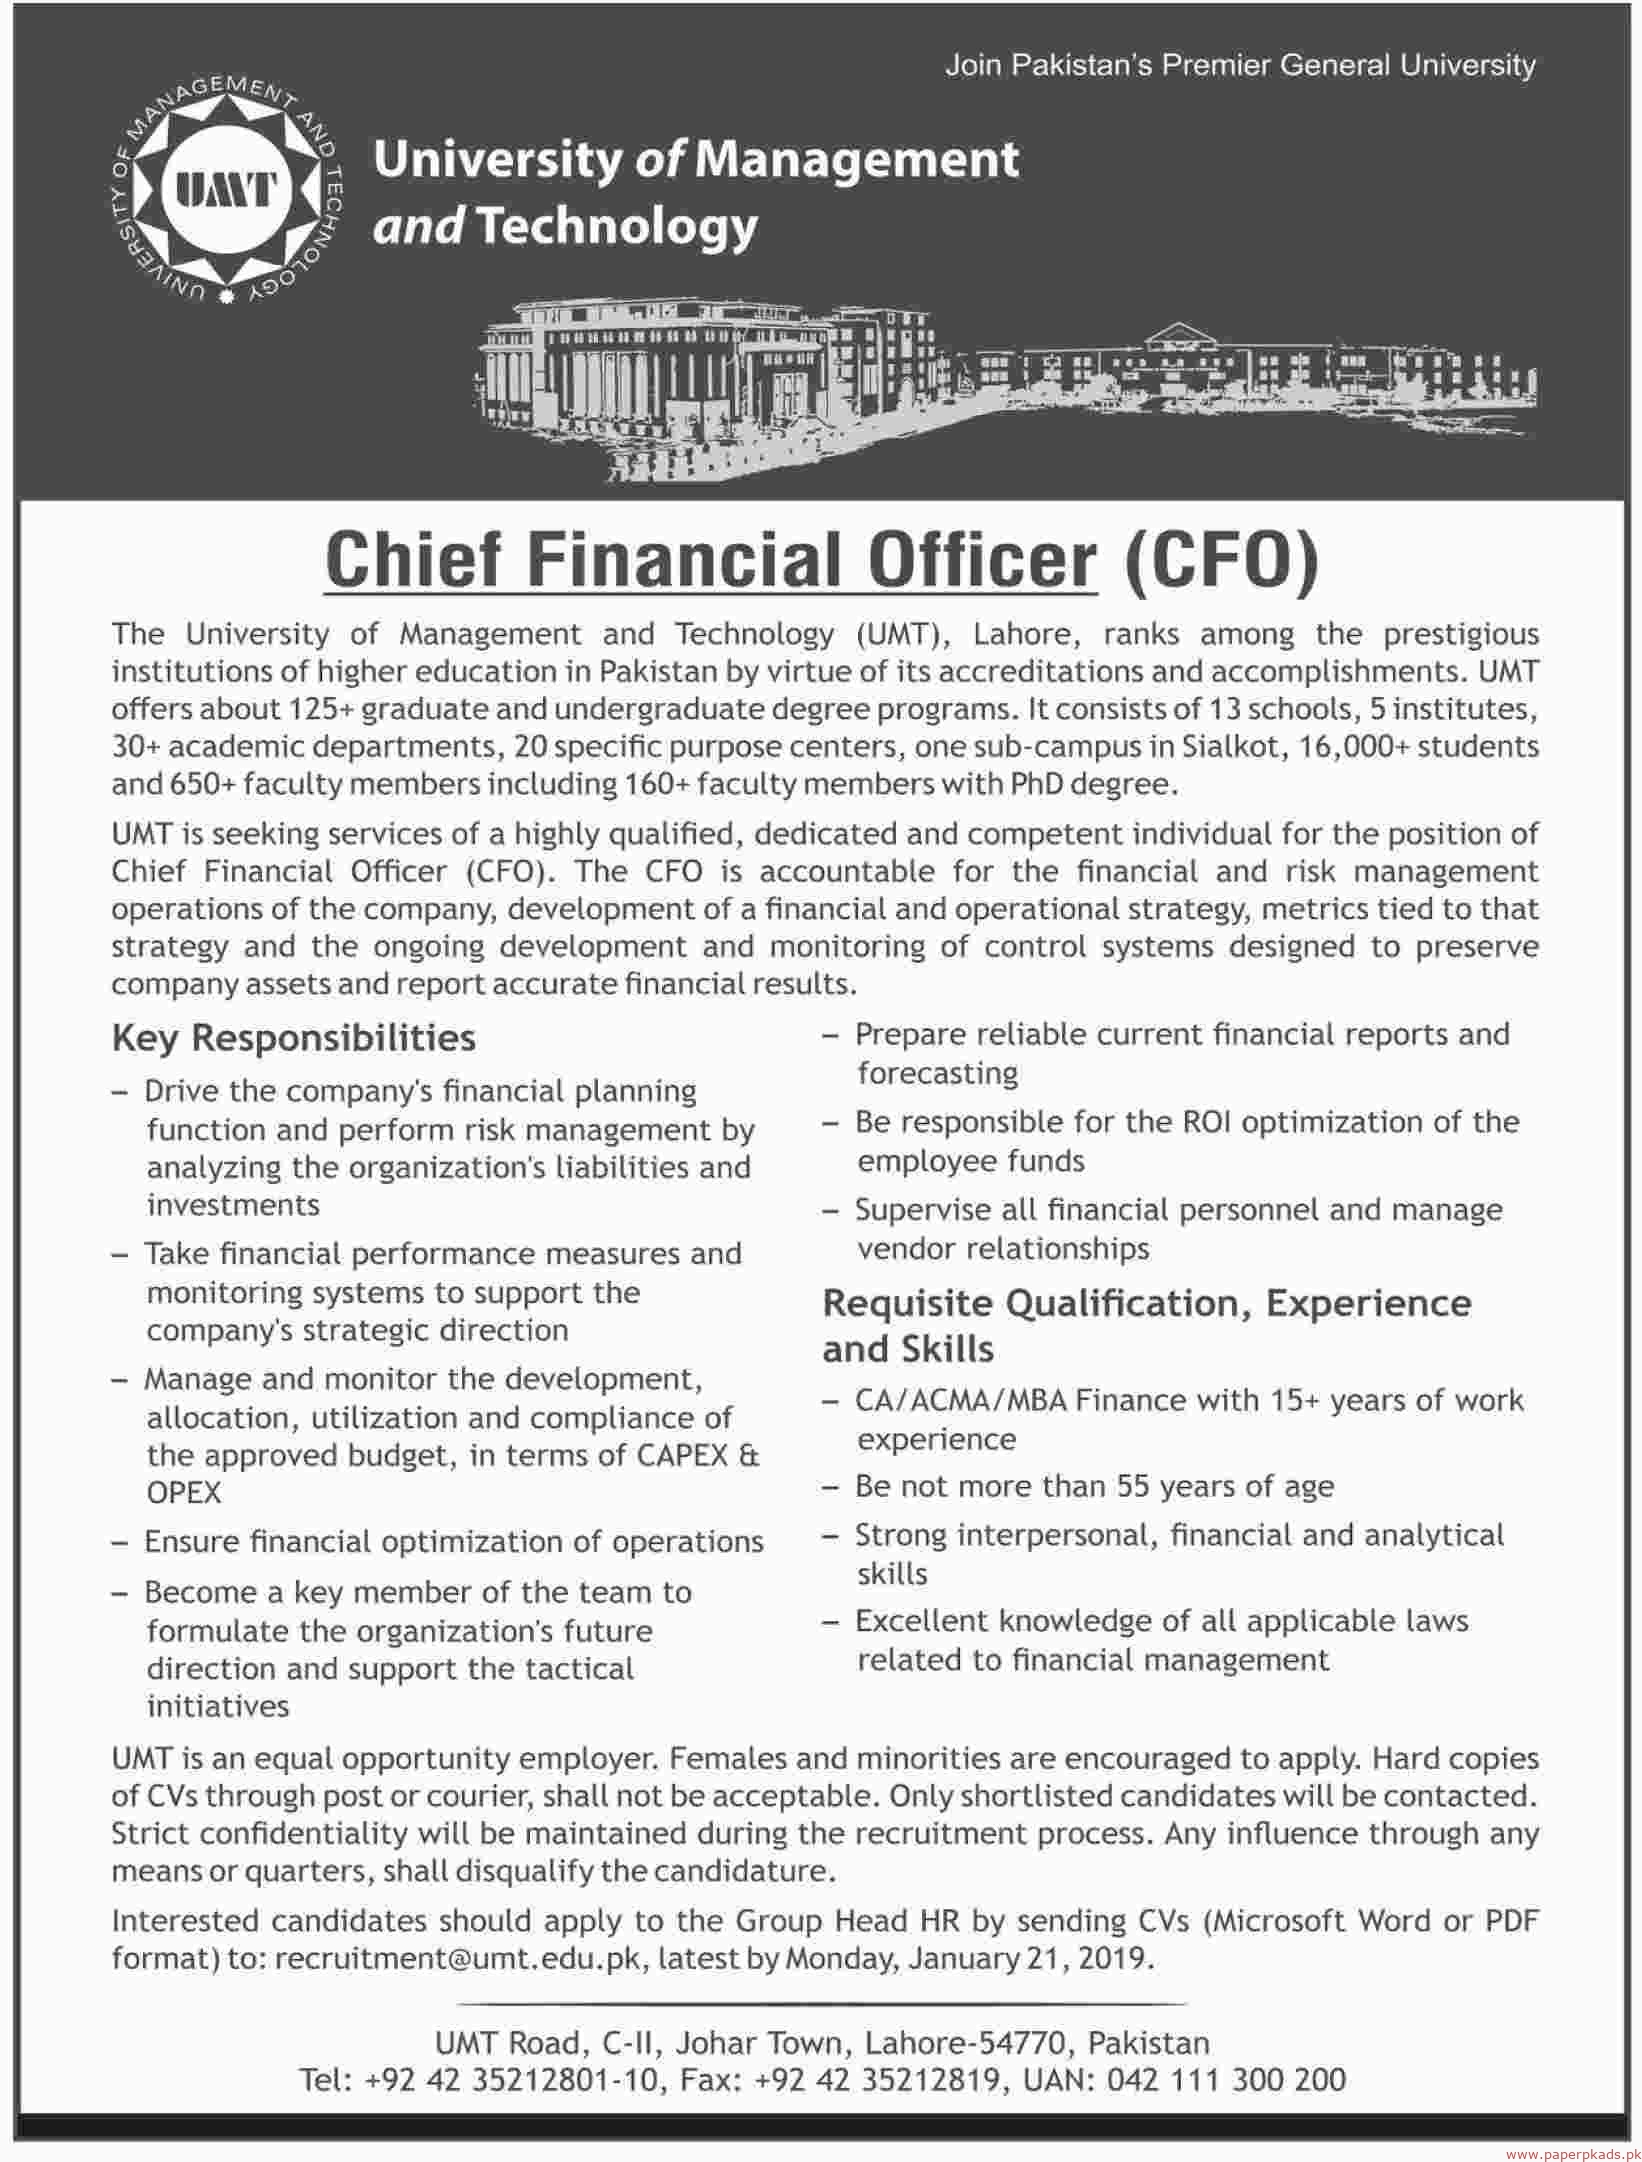 University of Management and Technology (UMT) Jobs 2019 Latest